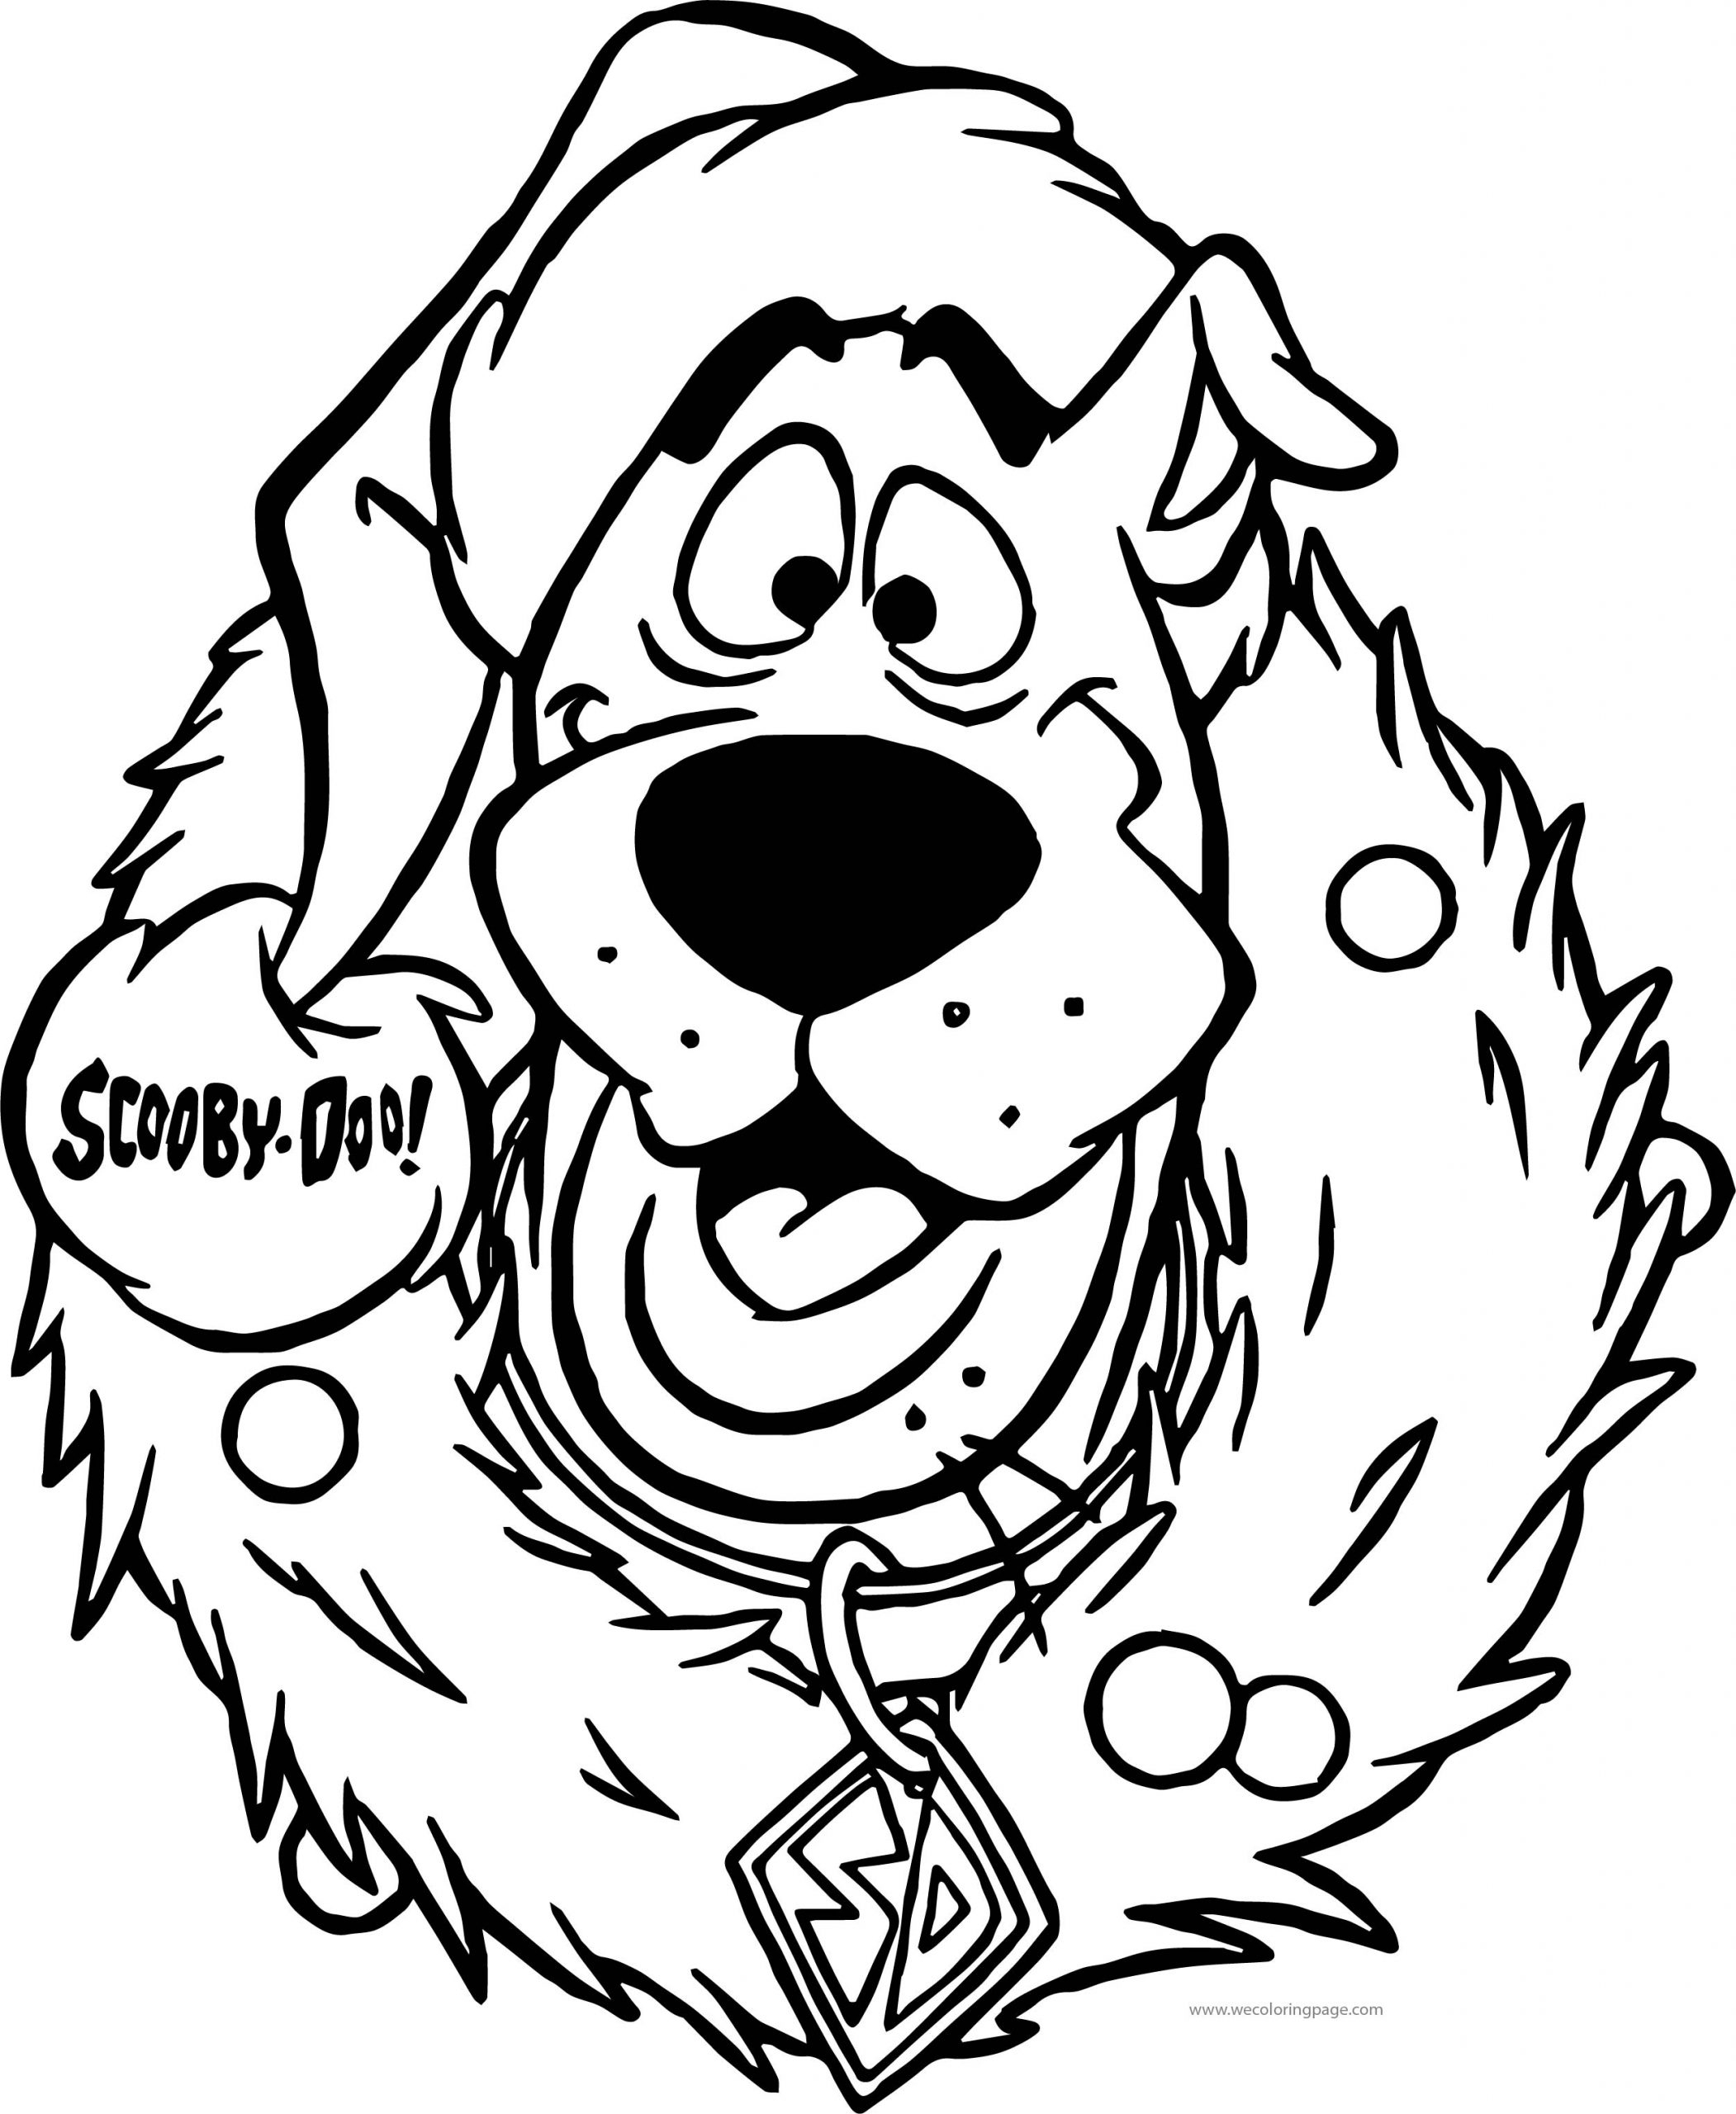 Pages Coloring ~ Pages Coloring Scooby Doo Drawing The avec Scooby Doo À Colorier